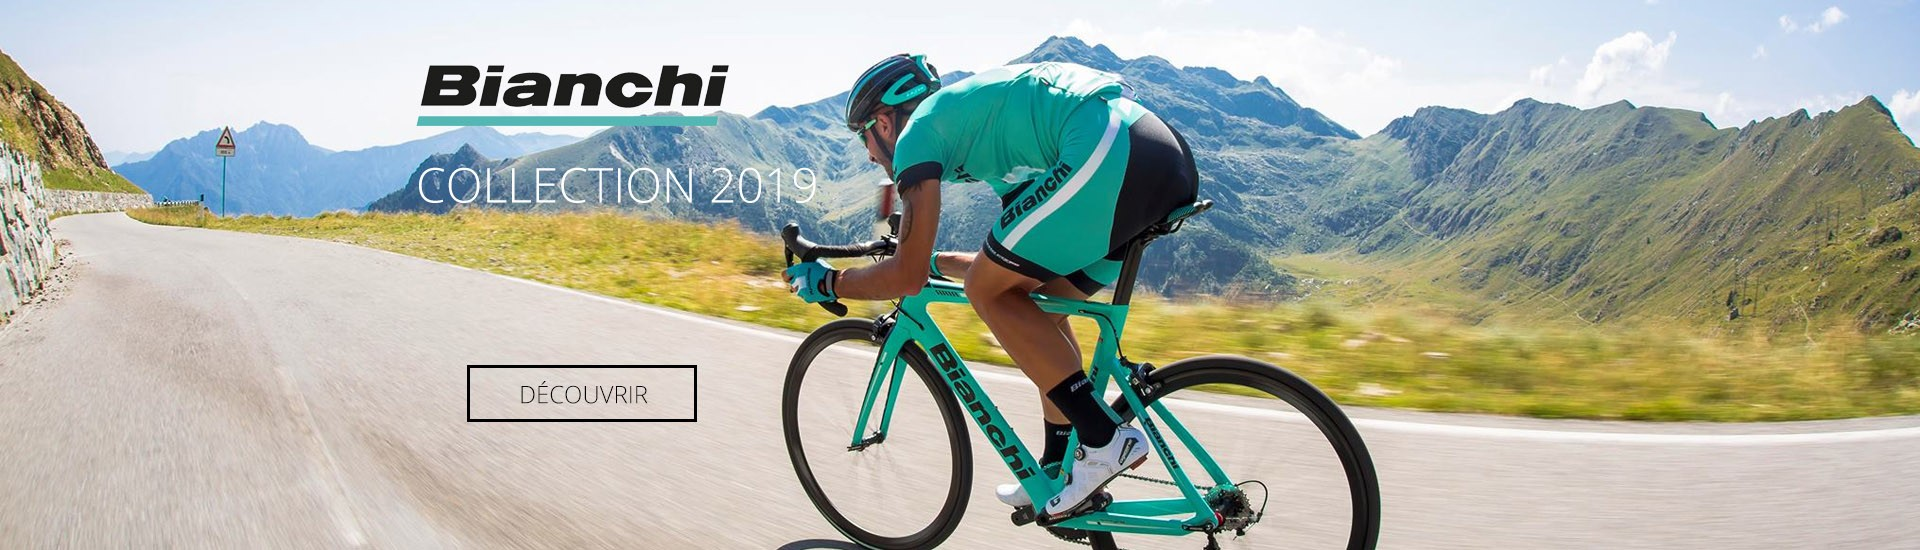 Collection Bianchi Bikes 2019